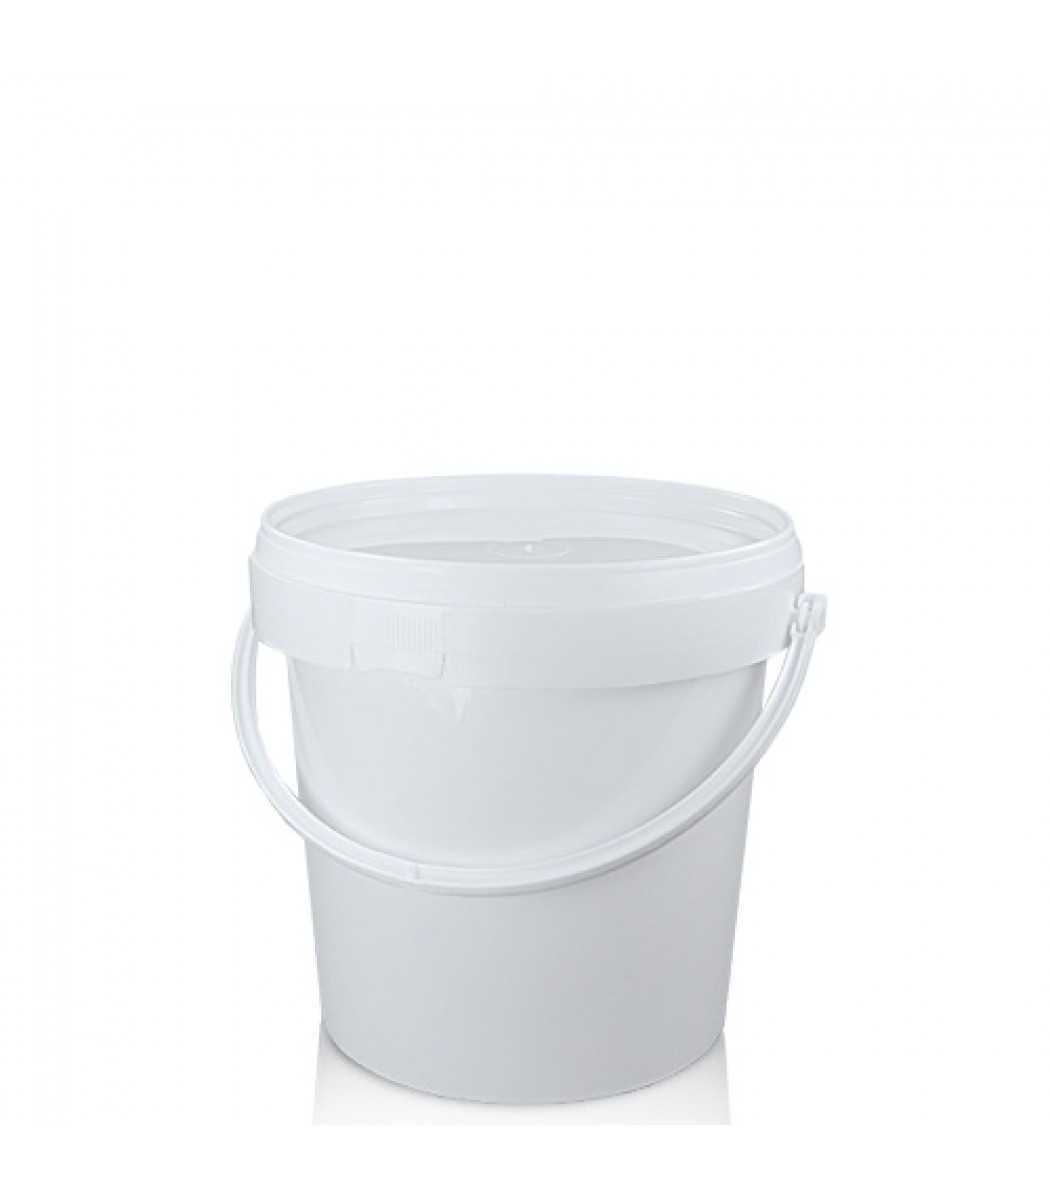 1 Litre White Ppc Bucket With Plastic Handle And Lid